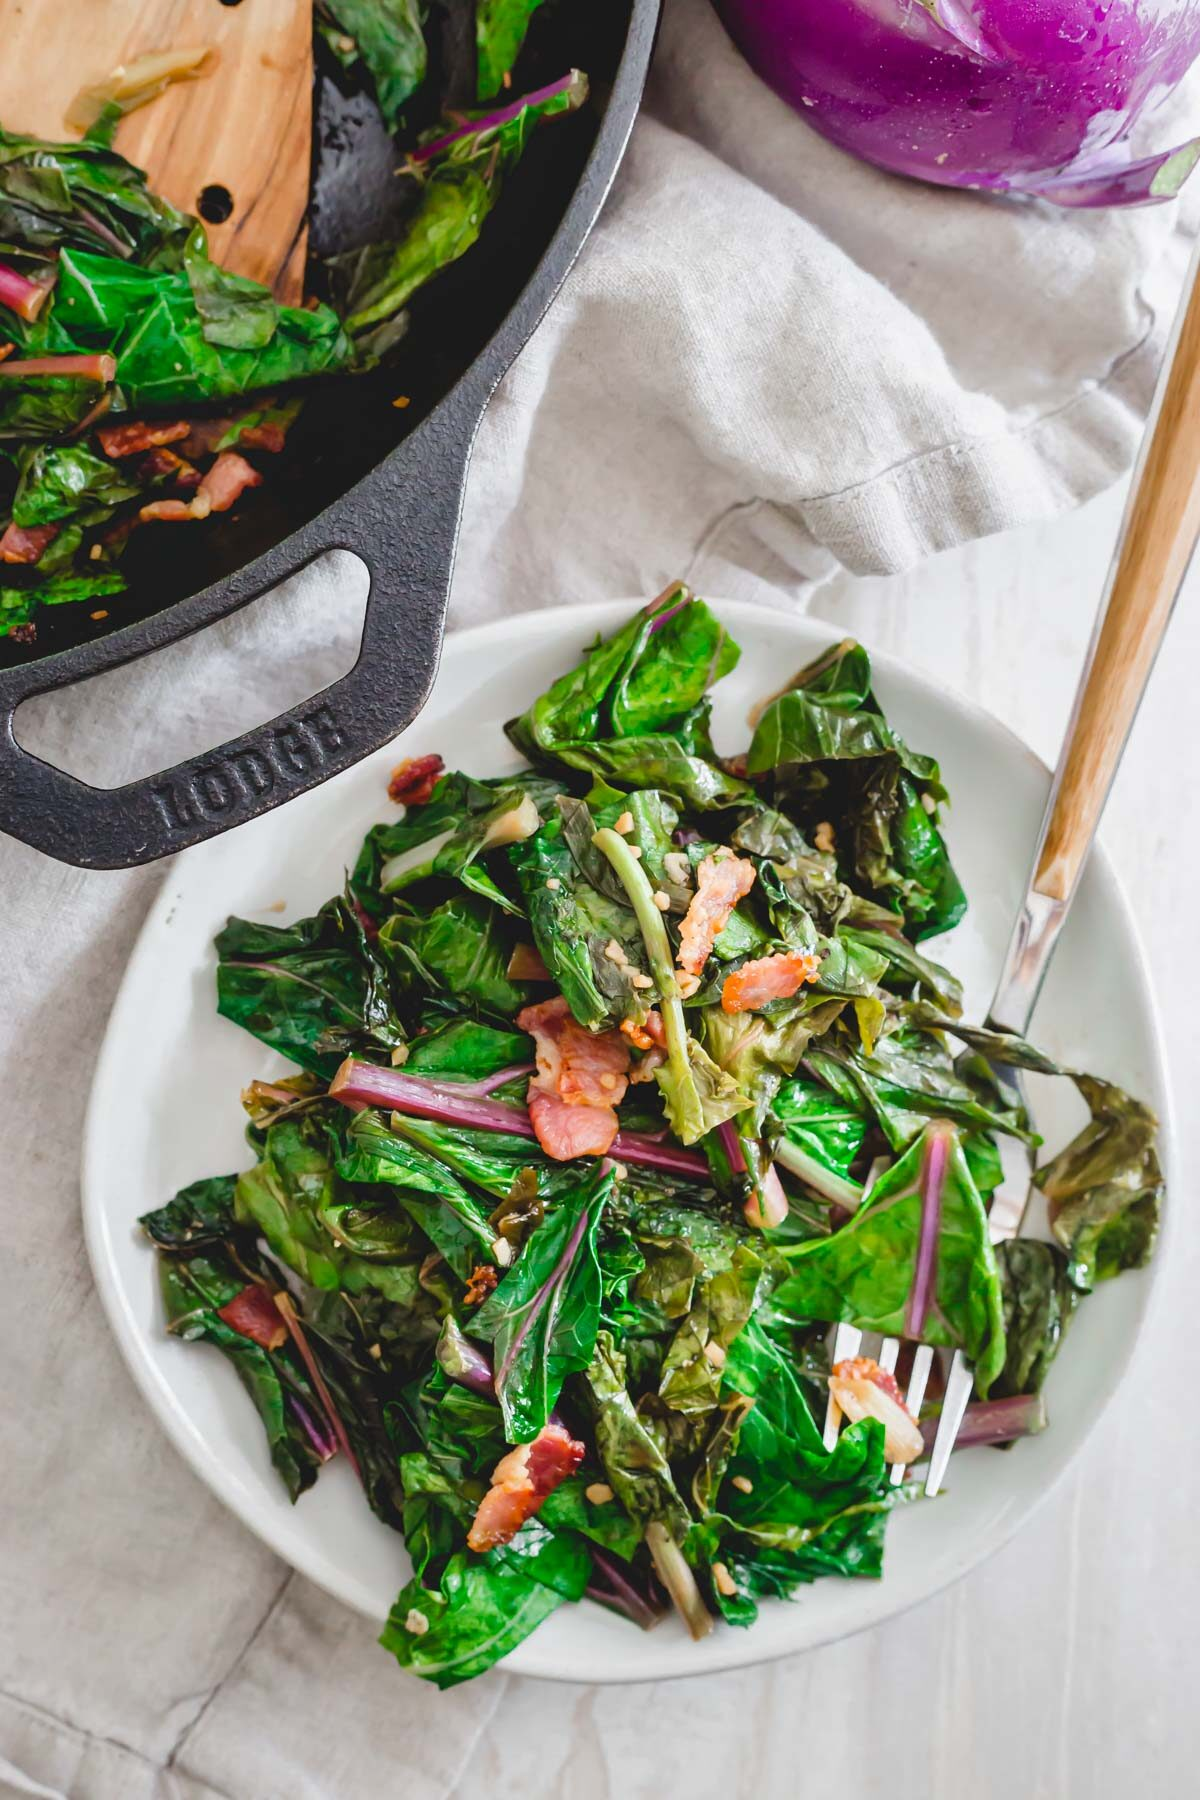 Cooked kohlrabi greens side dish with bacon, scallions and garlic.